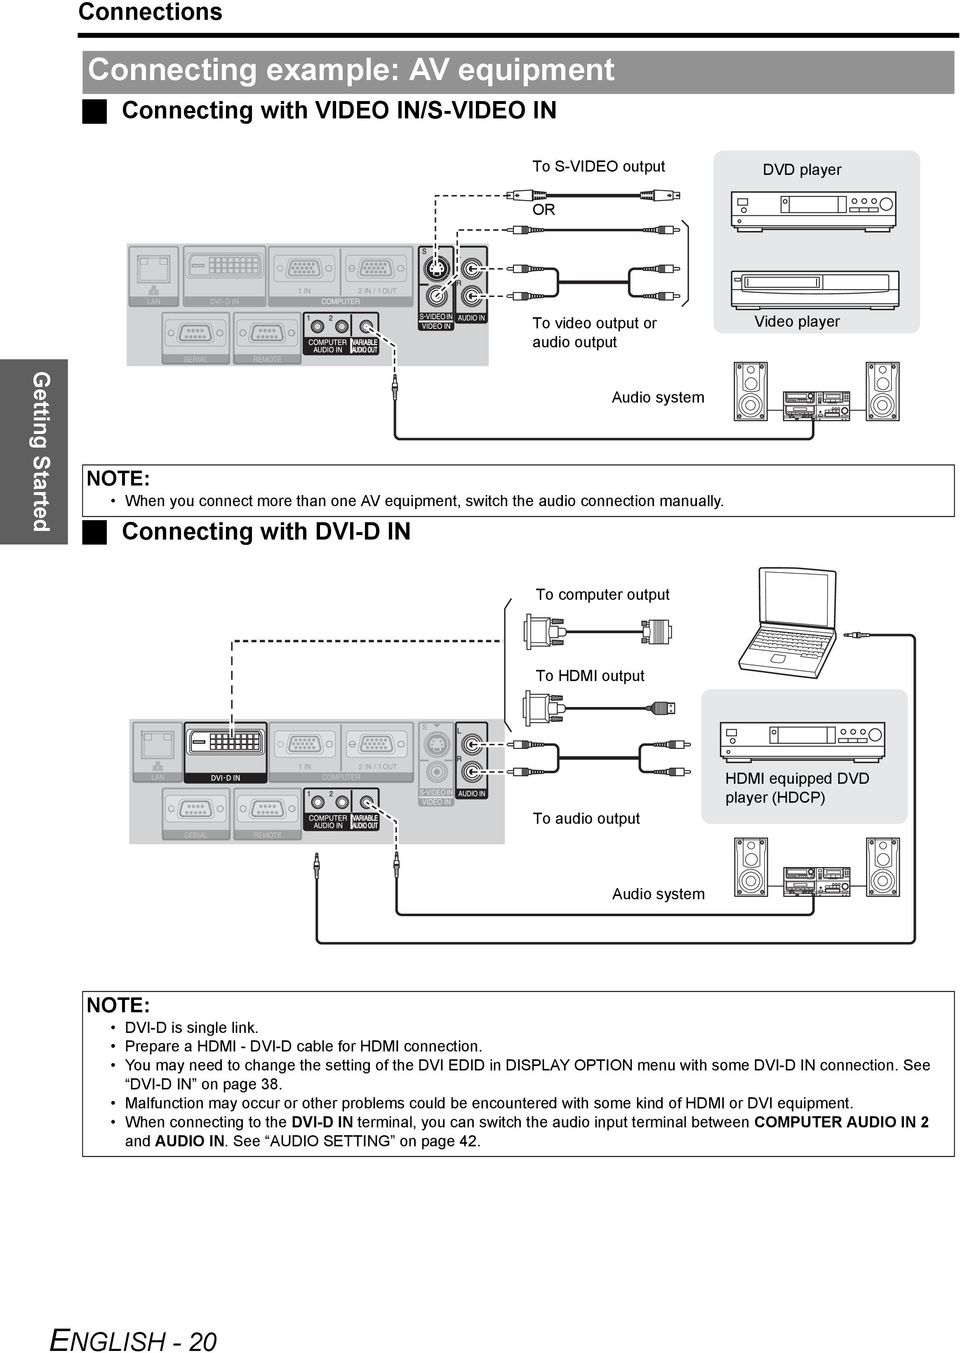 Connecting with DVI-D IN Audio system To computer output To HDMI output To audio output HDMI equipped DVD player (HDCP) Audio system DVI-D is single link.